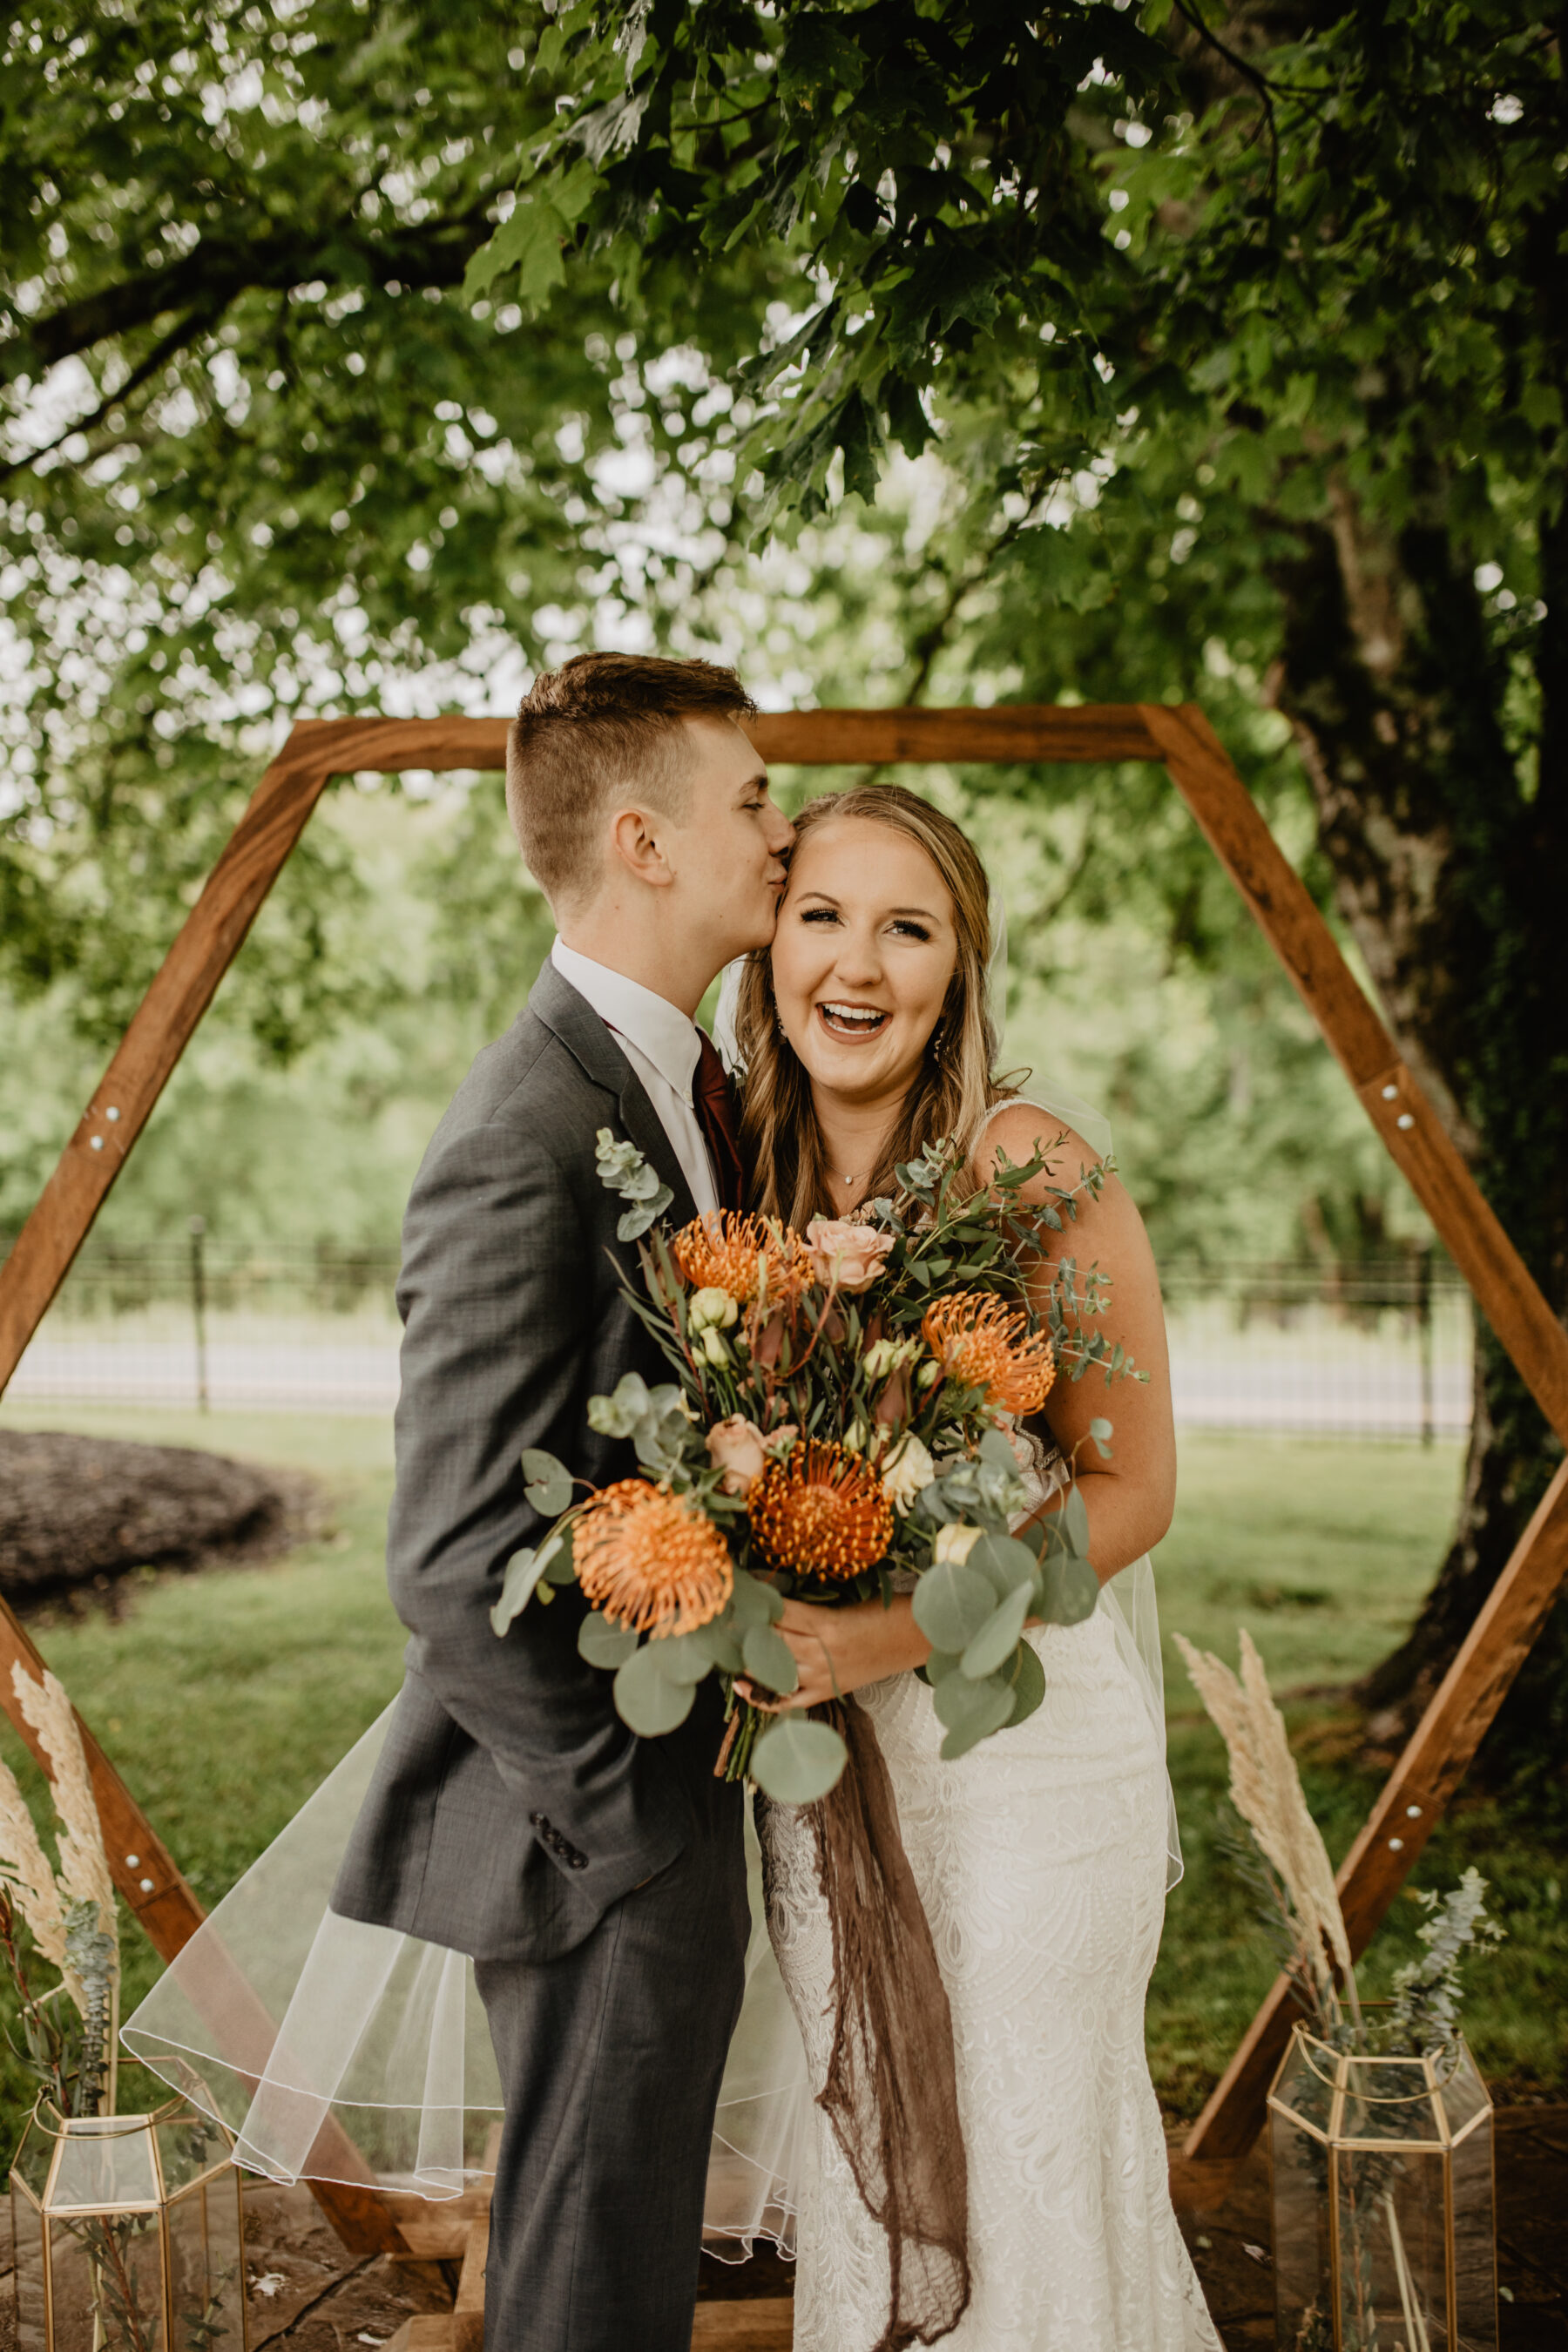 Wedding ceremony photos: Stunning Fall Styled Shoot at Promise Manor featured on Nashville Bride Guide